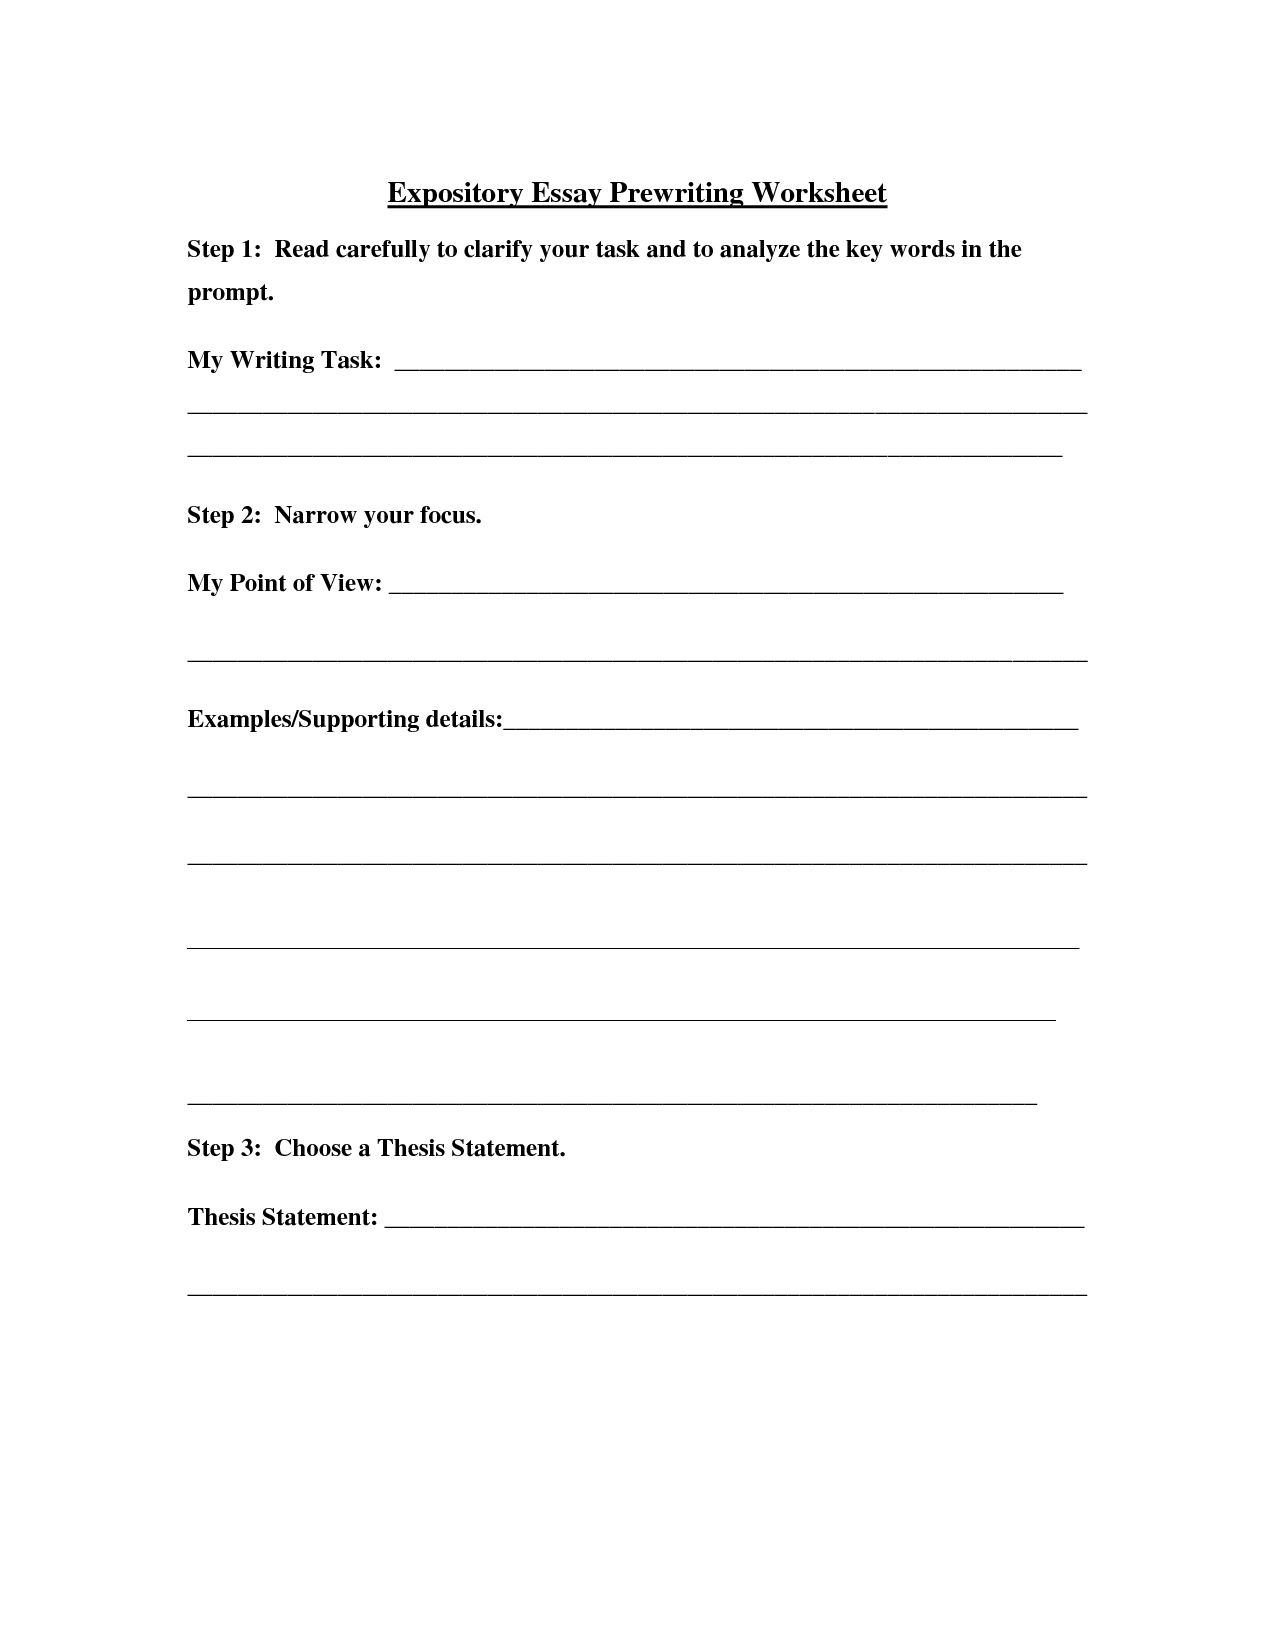 Personal Pre Writing Worksheet For Middle School